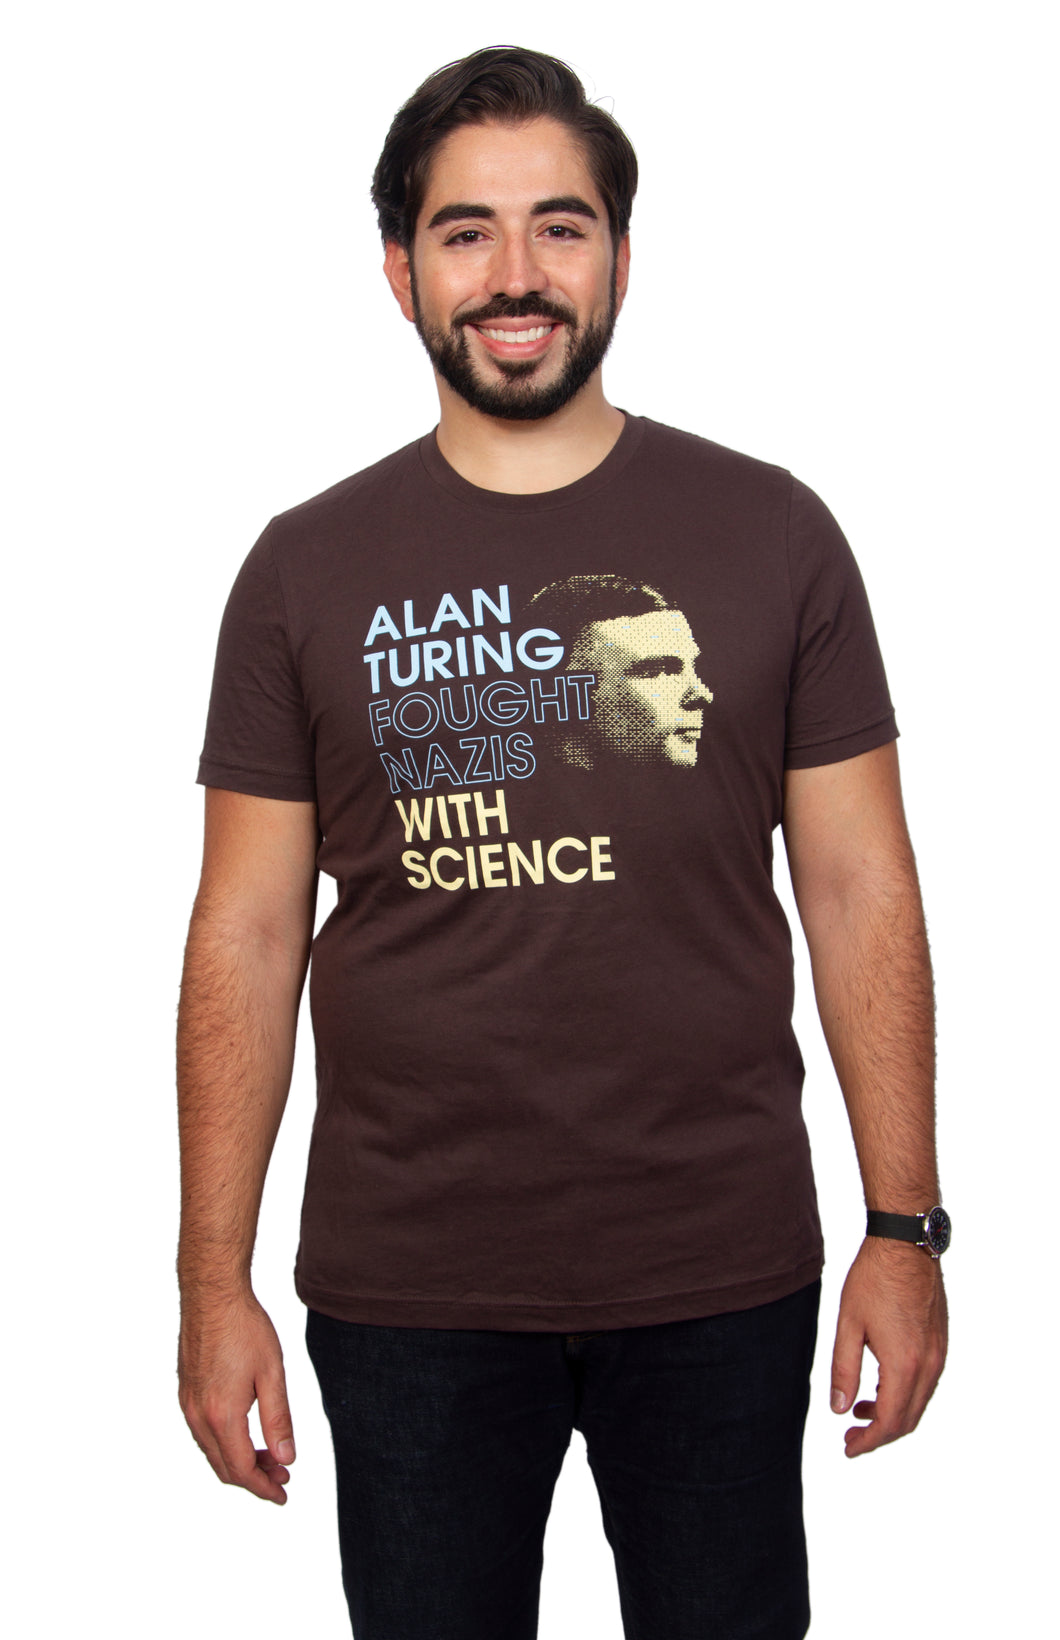 Alan Turing Fought Nazis With Science T-shirt